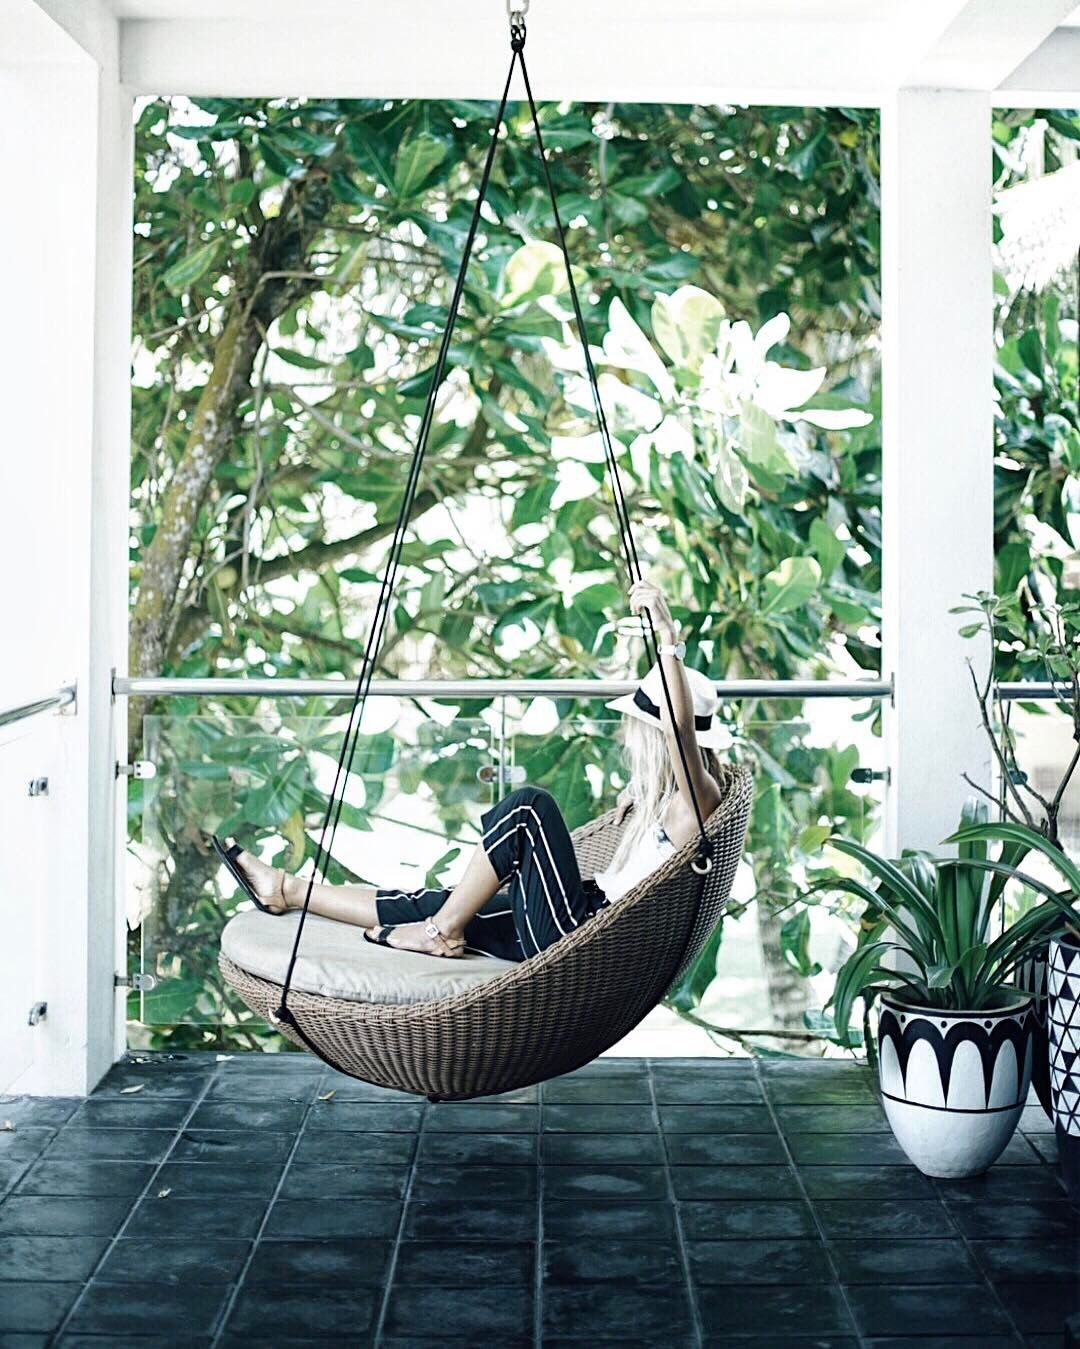 porch swings porch swing outdoor outdoor decor on porch swing ideas inspiration id=68030